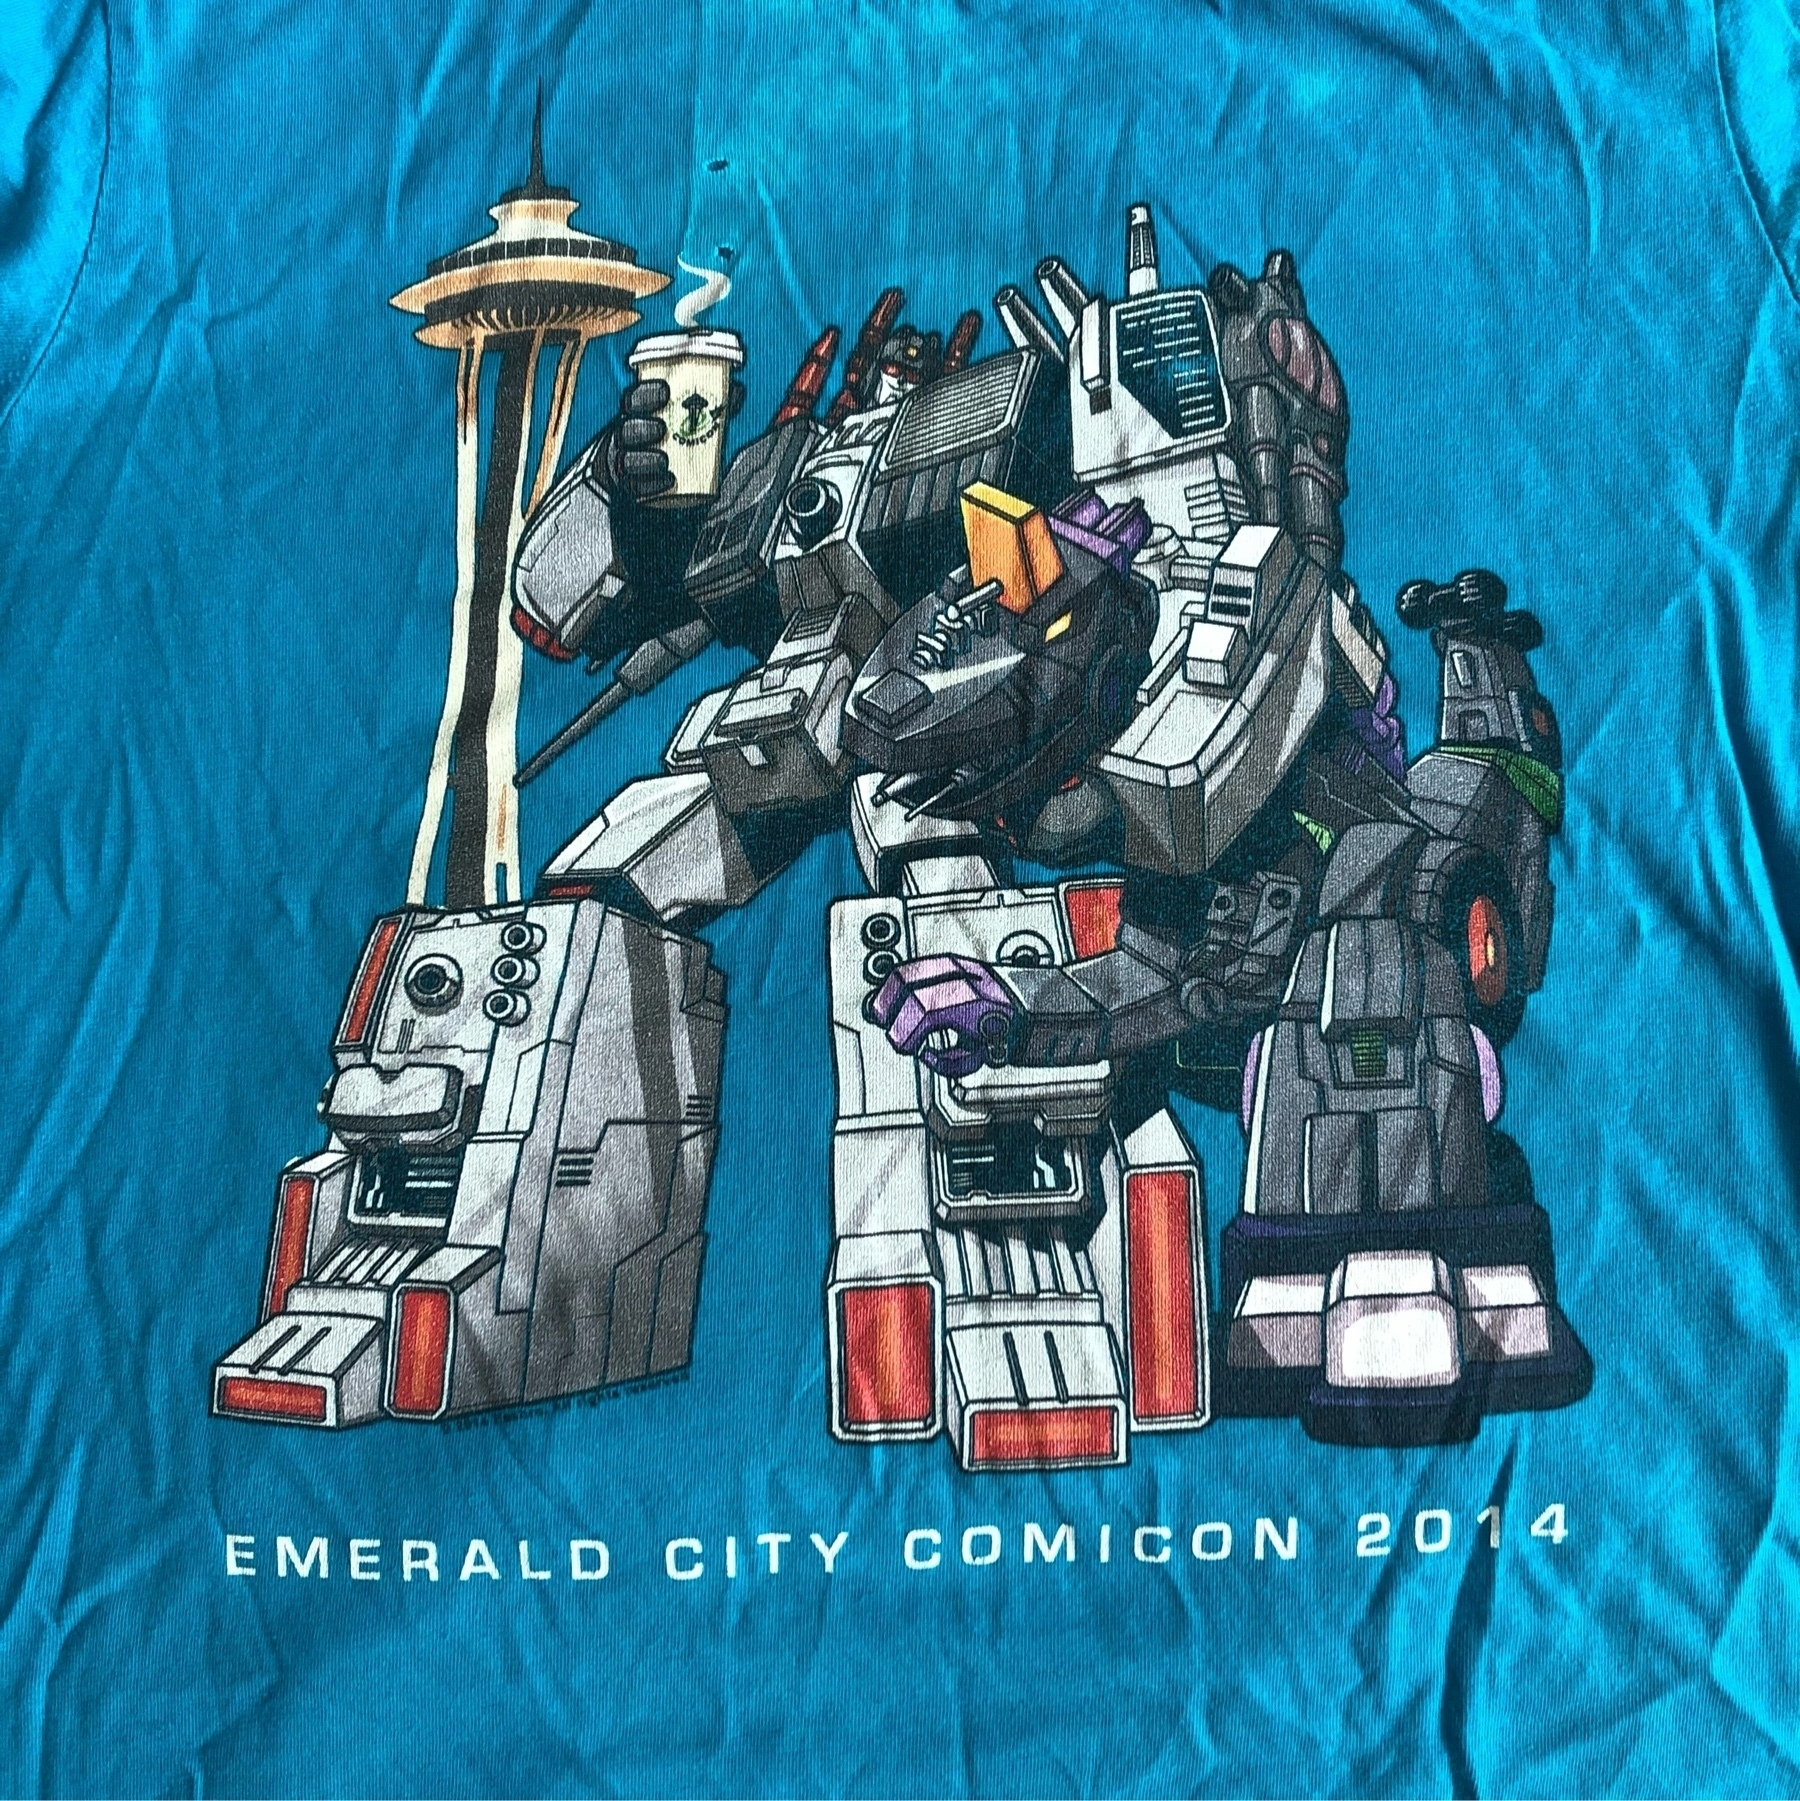 A worn out 2014 Emerald City Comicon Tee with Star Scream next to the space Needle